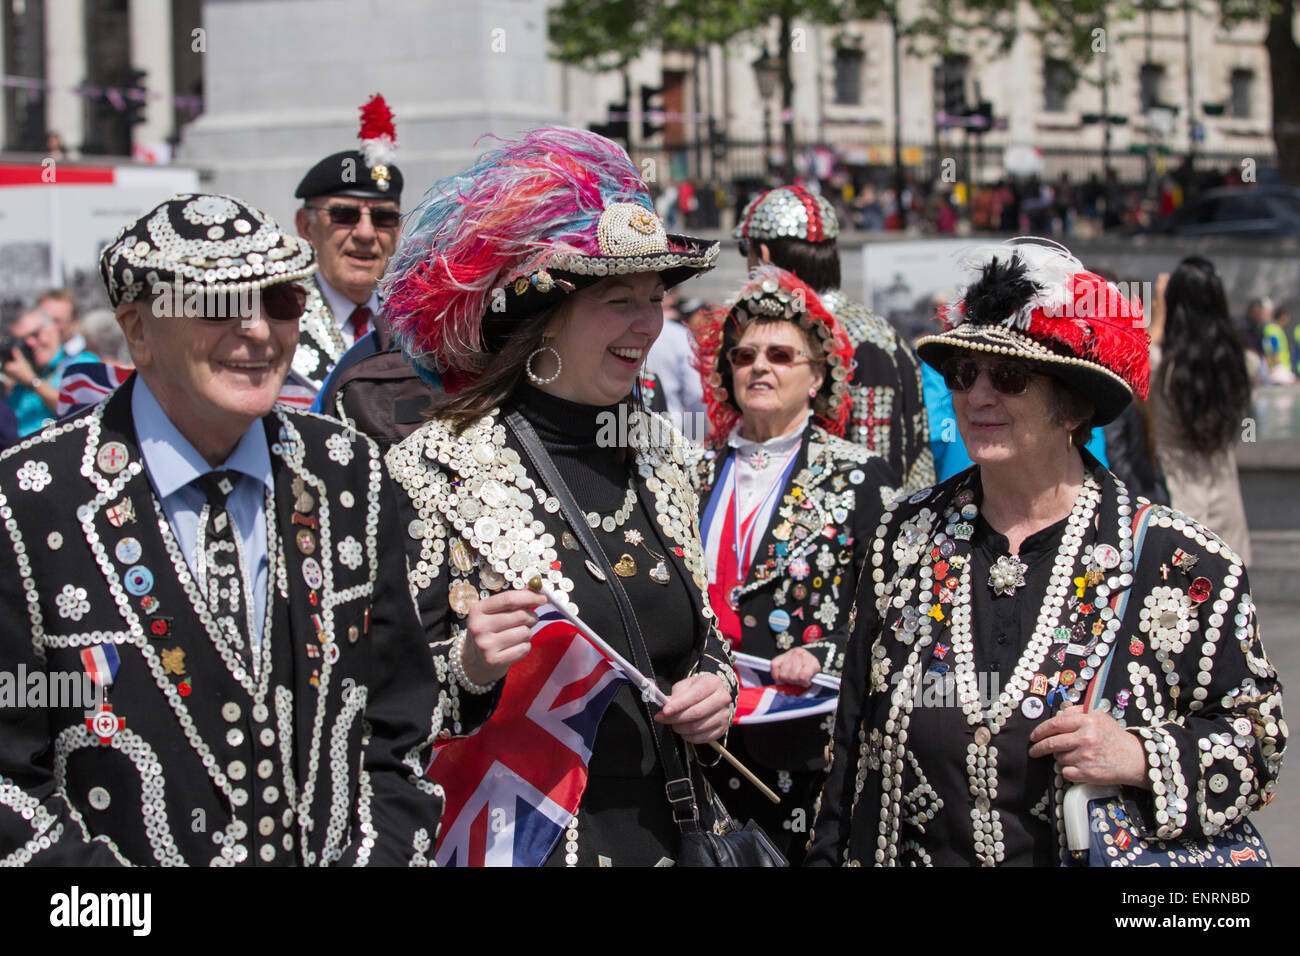 Pearly King and Queens celebrating VE 70 Day in Trafalgar Square, London - Stock Image